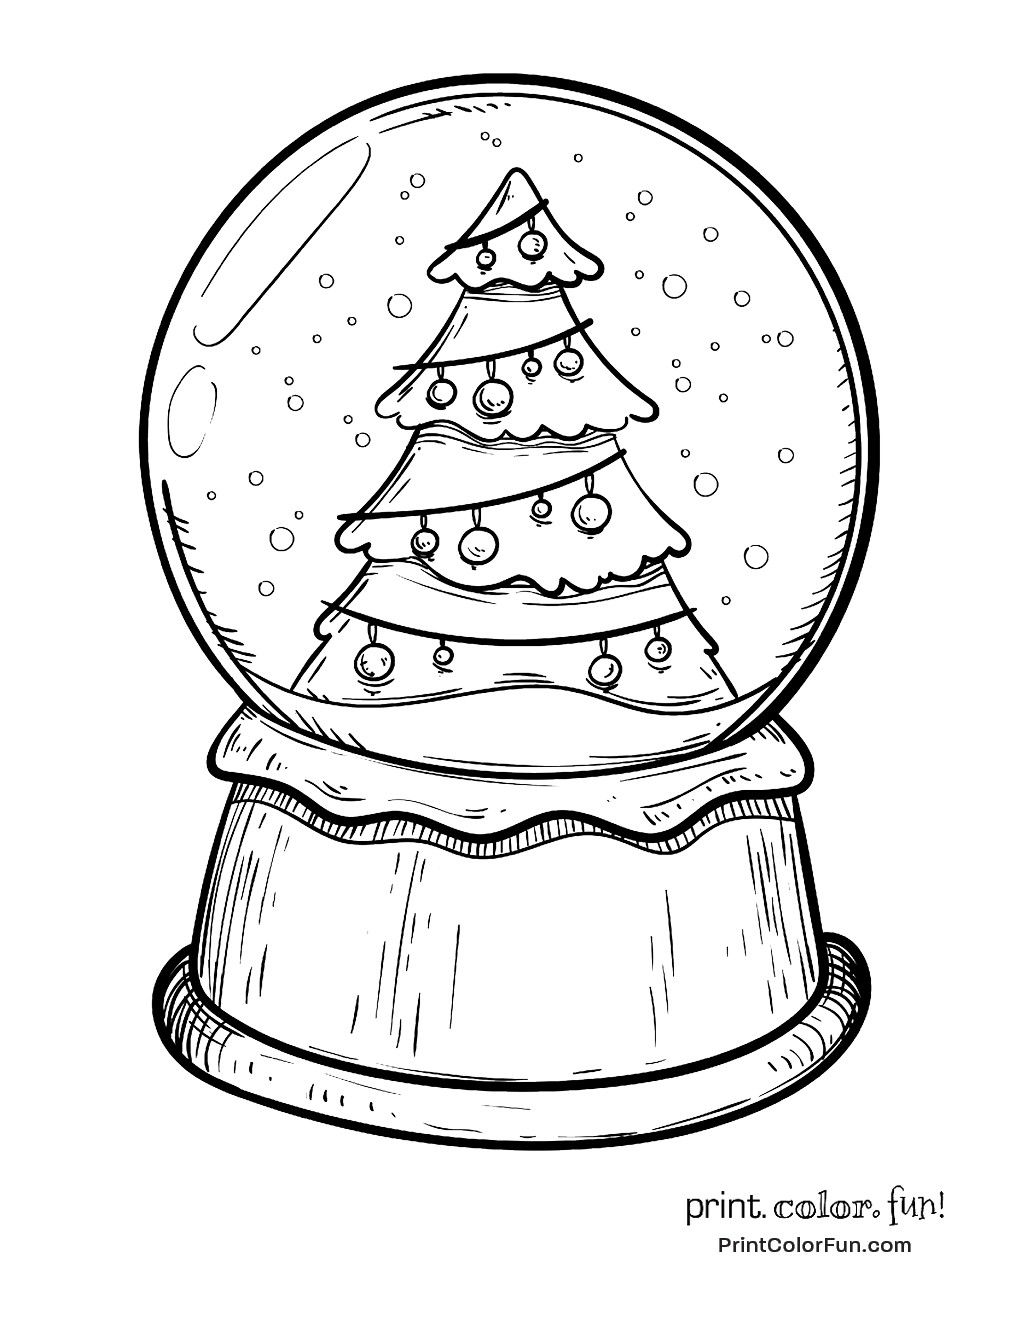 Pin by rodriguez pc on Weihnachtsmalvorlagen  Printable christmas